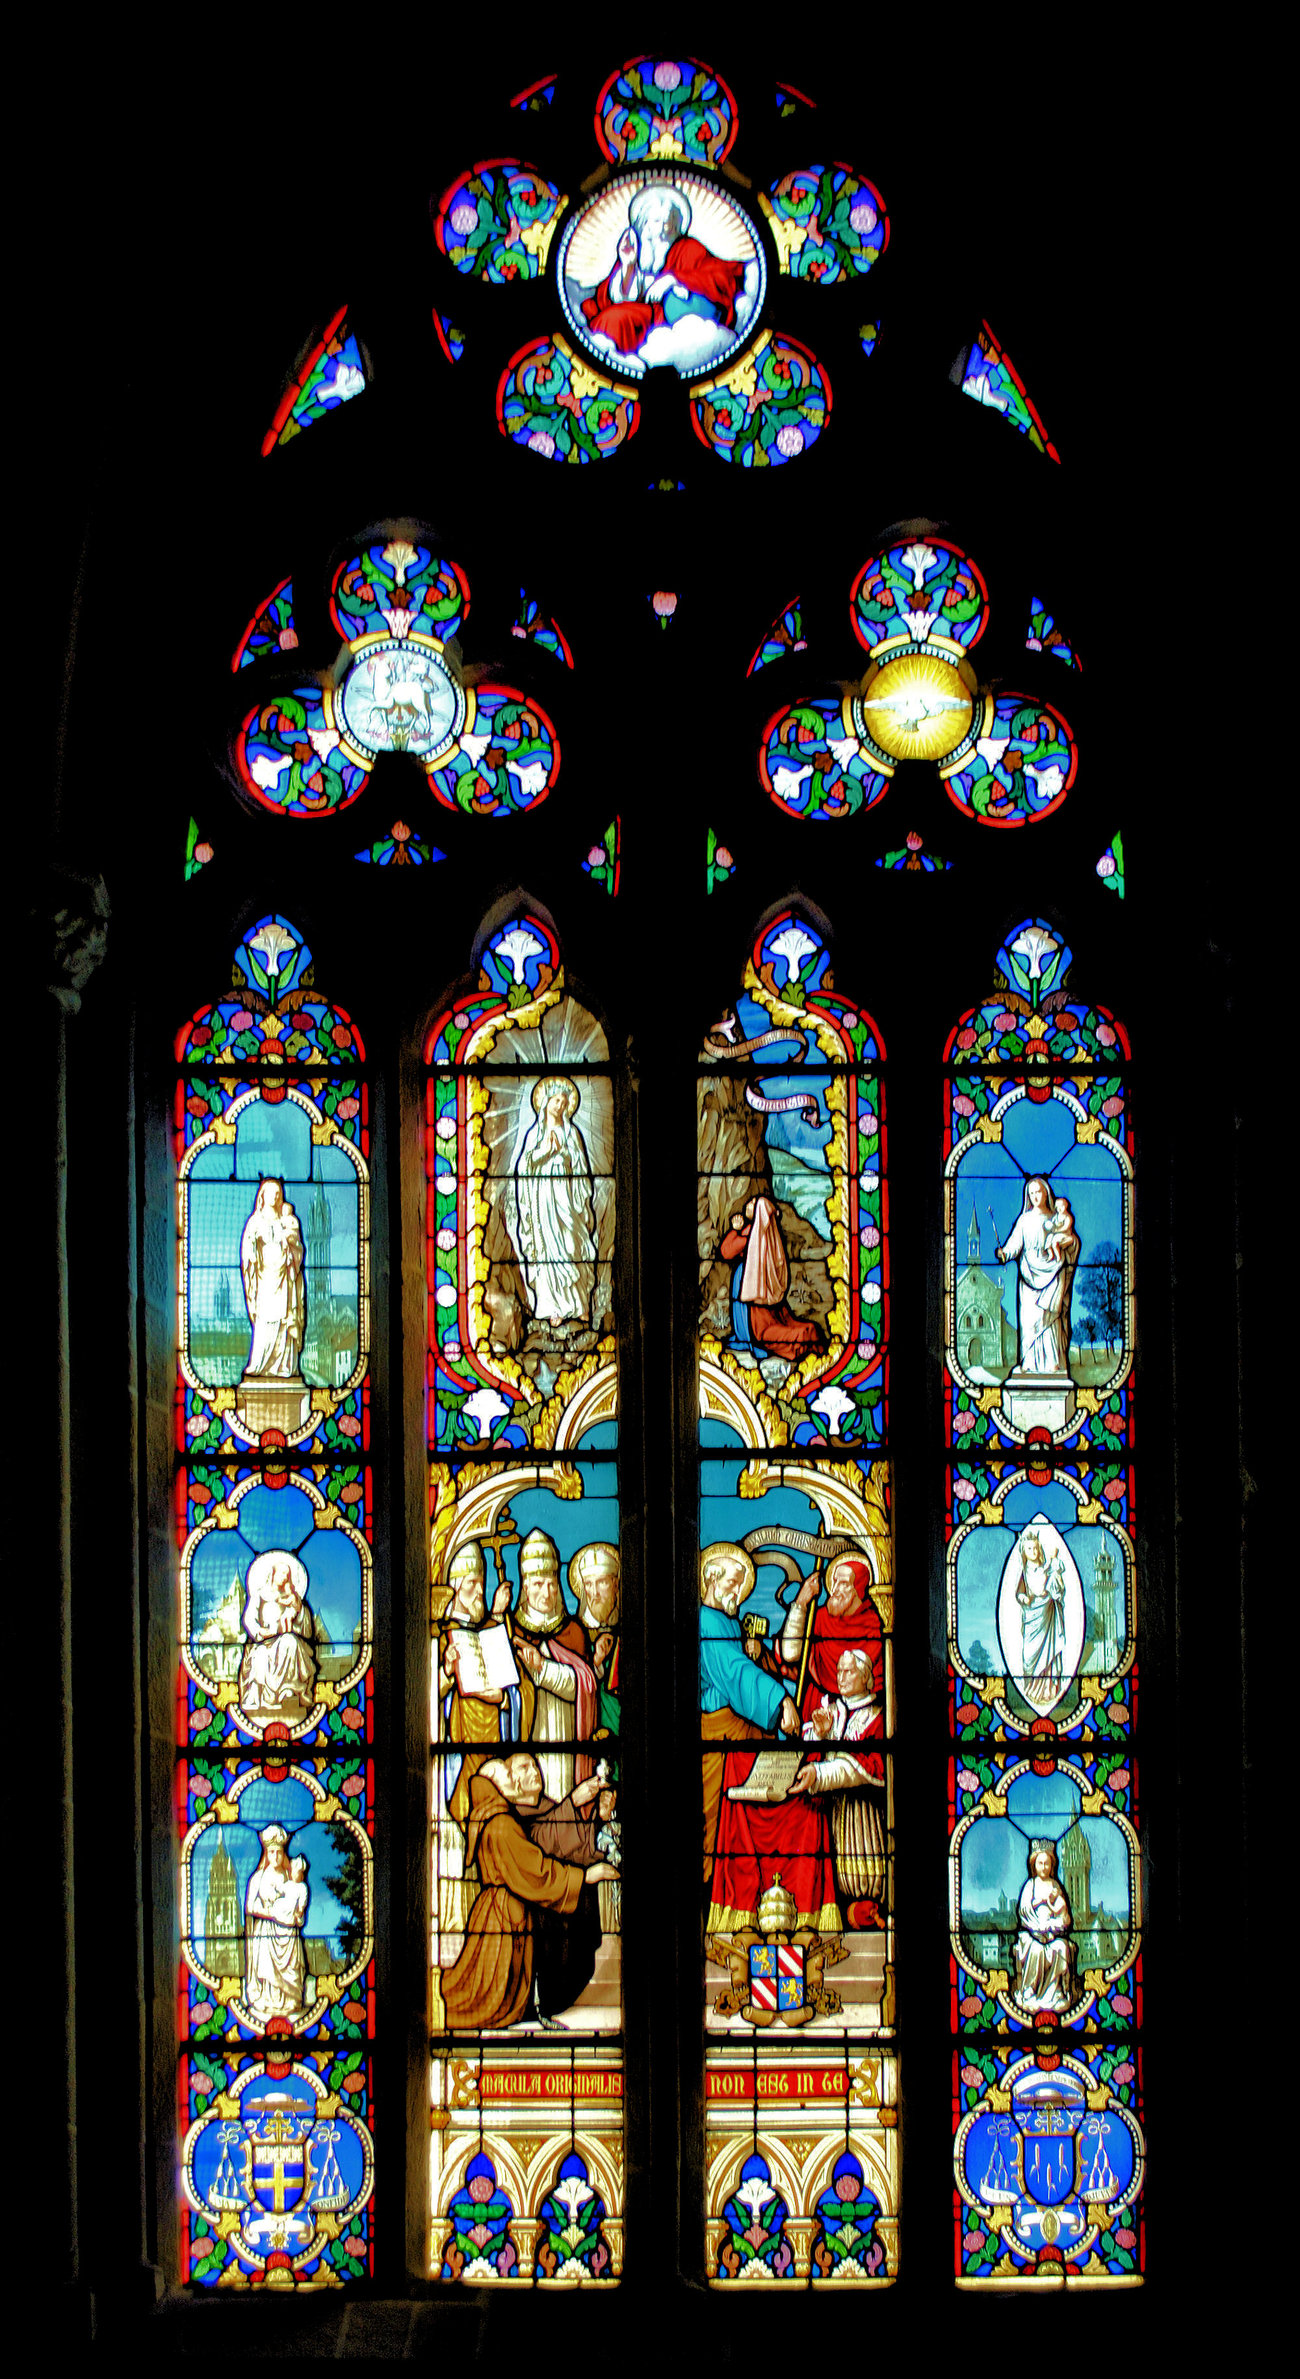 Vitrail - Stained glass window 11 by kordouane